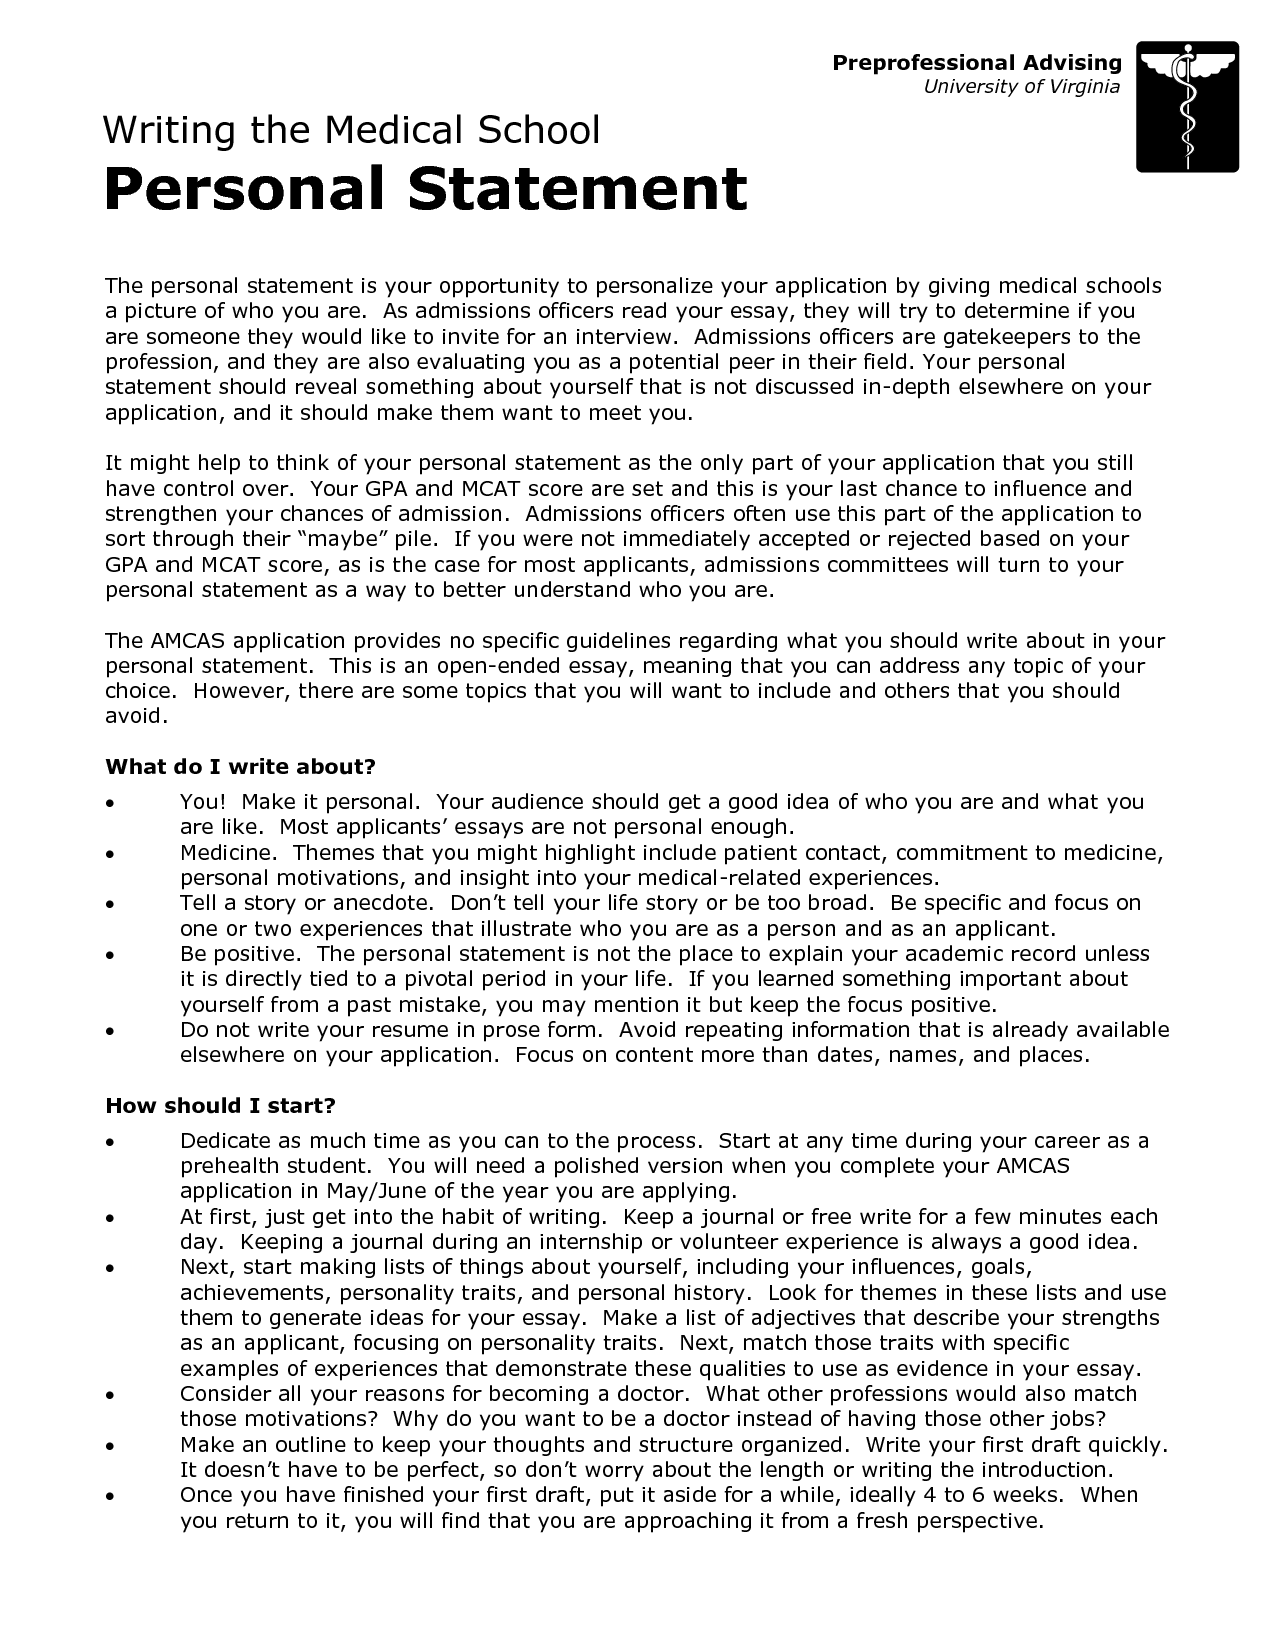 personal statement essay examples for college - Daway.dabrowa.co